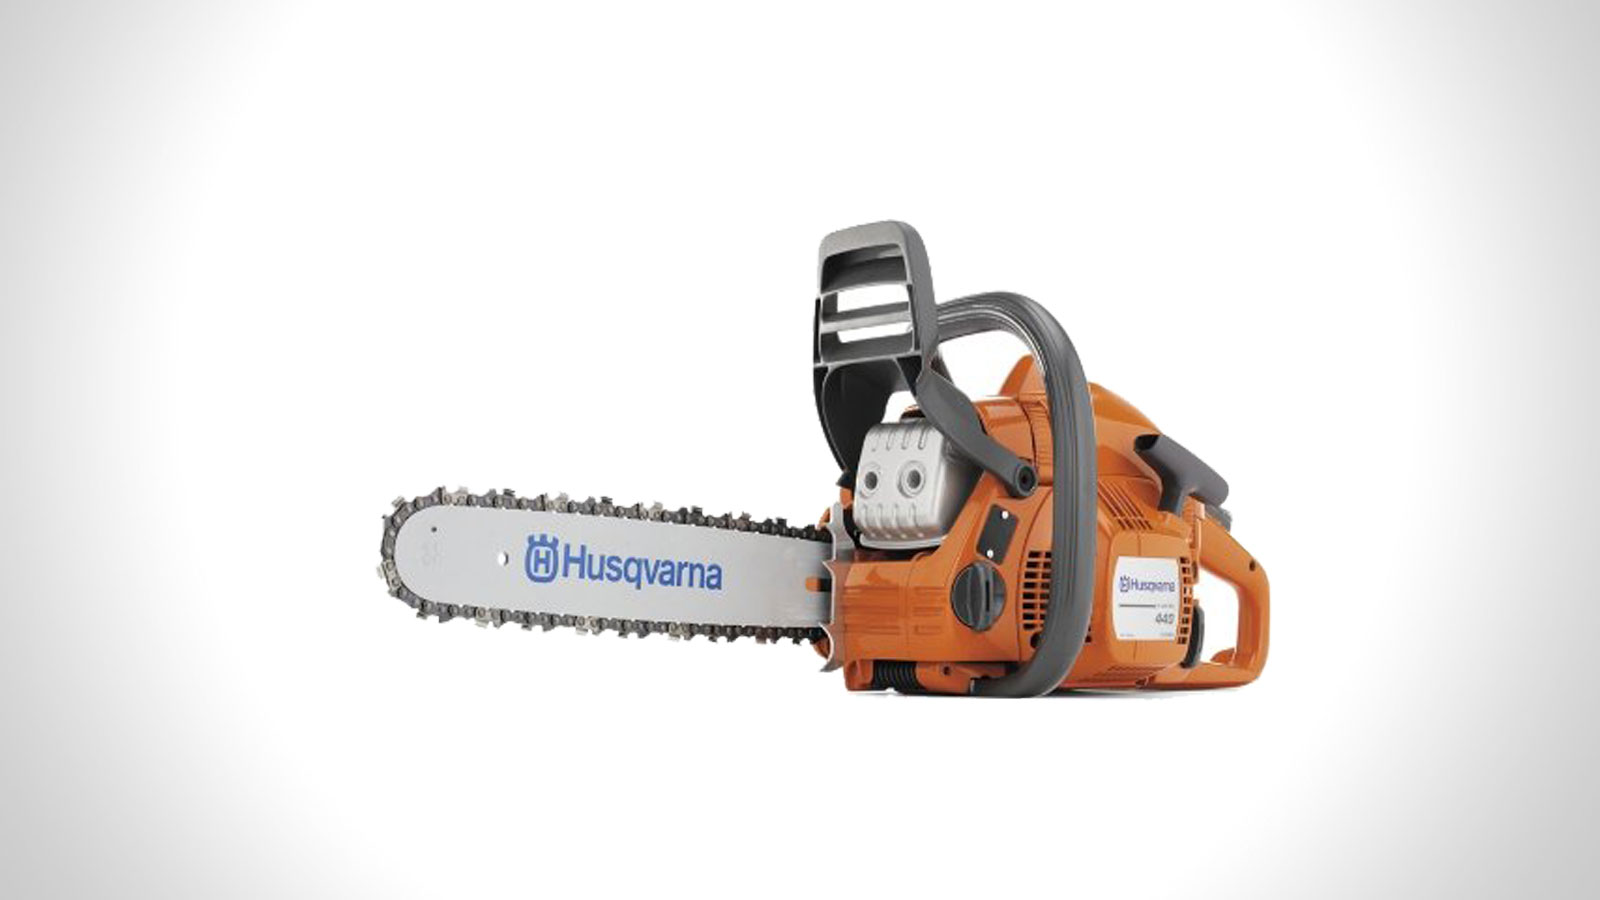 Husqvarrna 440e Gas Chain Saw   gifts for men   the best tool gift ideas